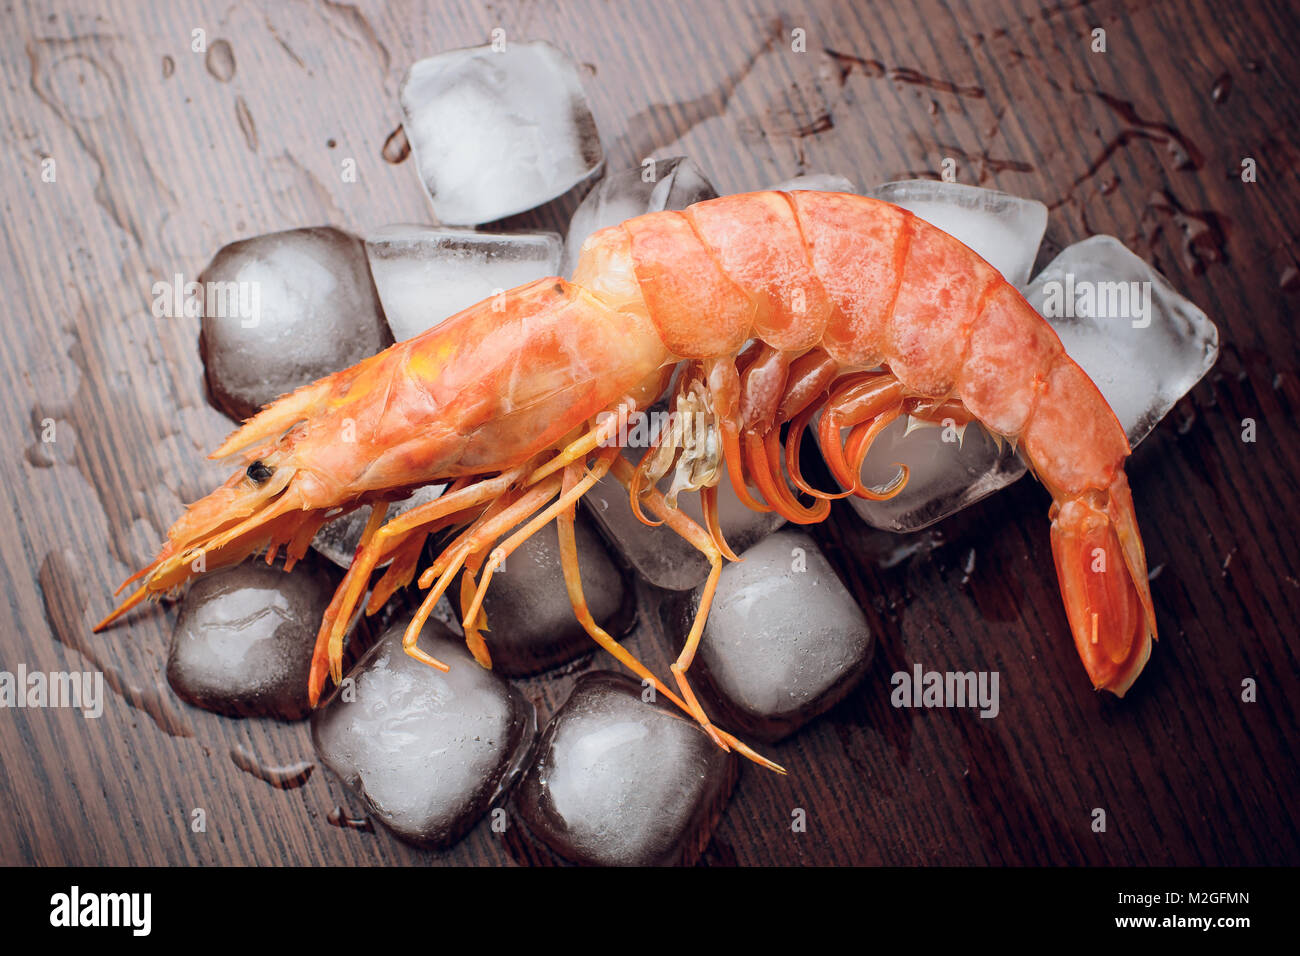 Argentine Raw Shrimp Seafood Food Red Ice Stock Photo 173696565 Alamy